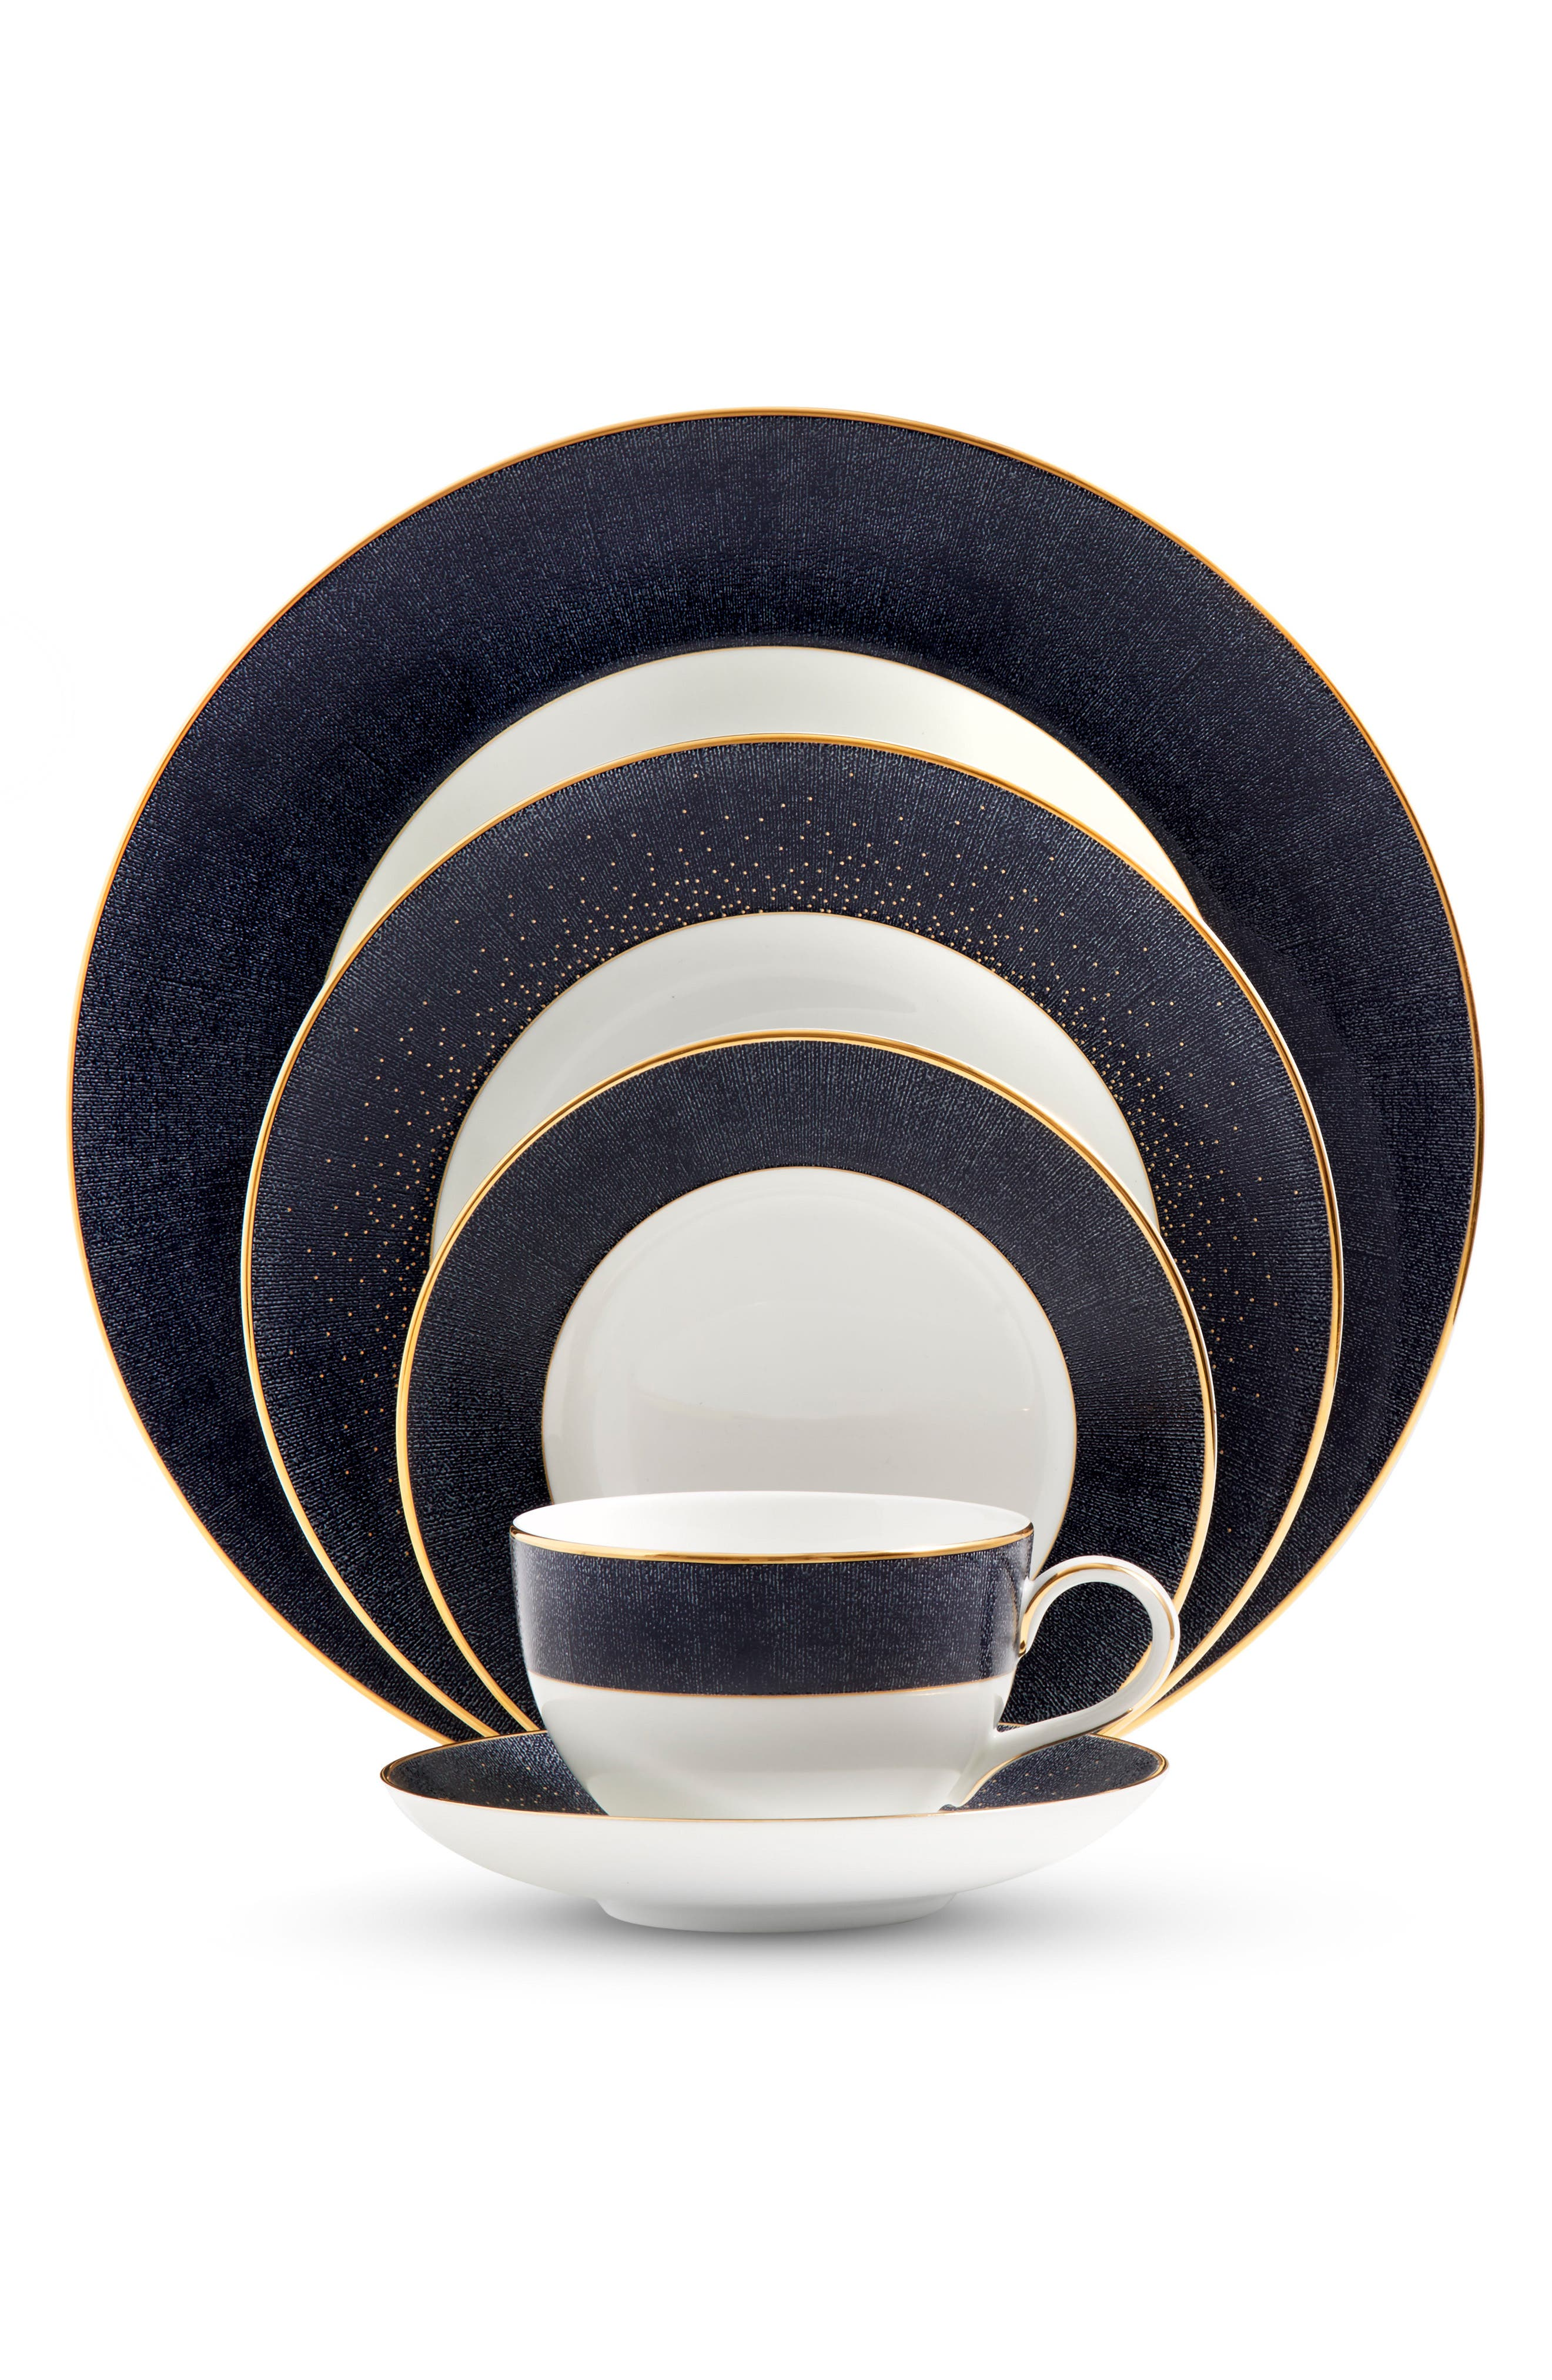 Monique Lhuillier Waterford Stardust Night 5-Piece Bone China Dinnerware Place Setting,                         Main,                         color, 100